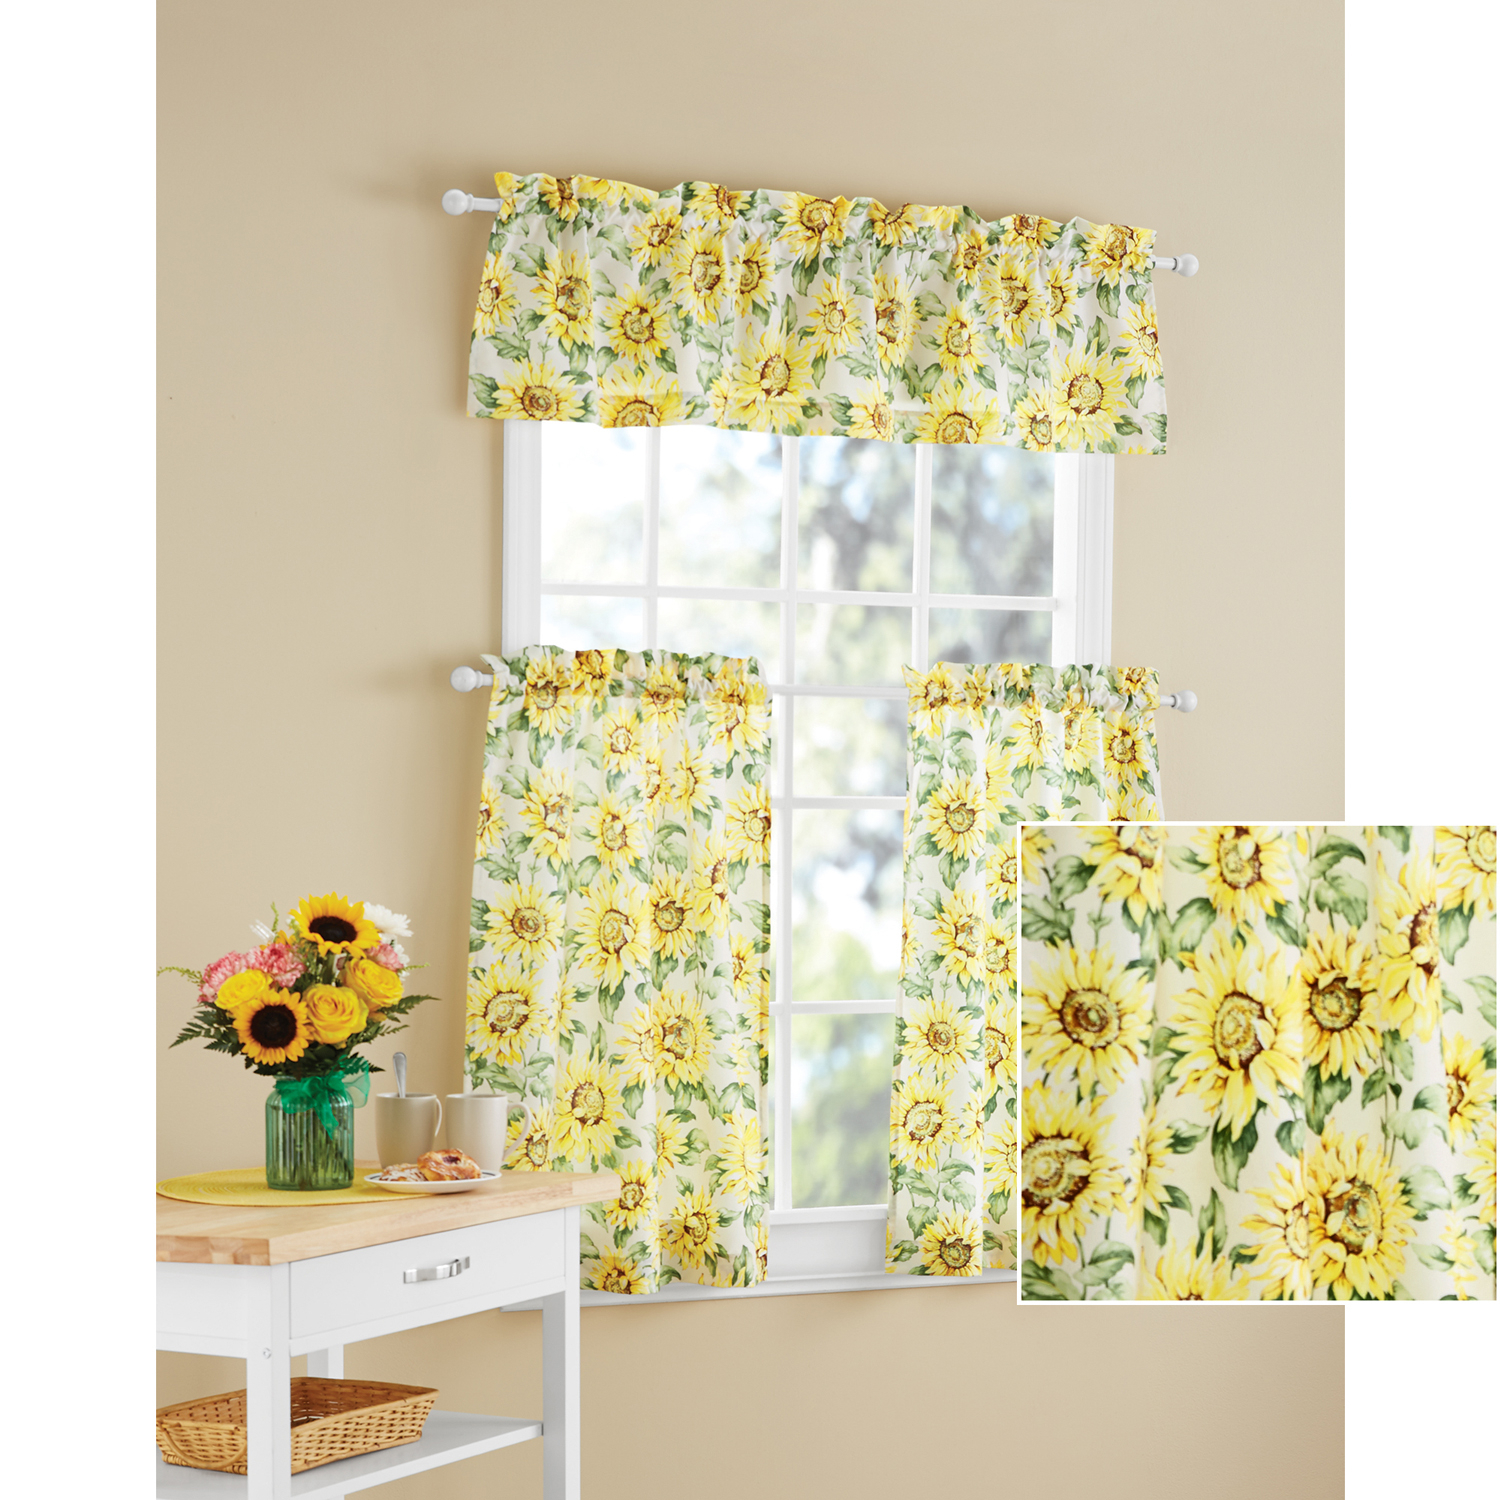 Details About Sunflower 3 Piece Kitchen Curtain Tier And Valance Set Home Decor Room Window In Grey Window Curtain Tier And Valance Sets (View 5 of 20)